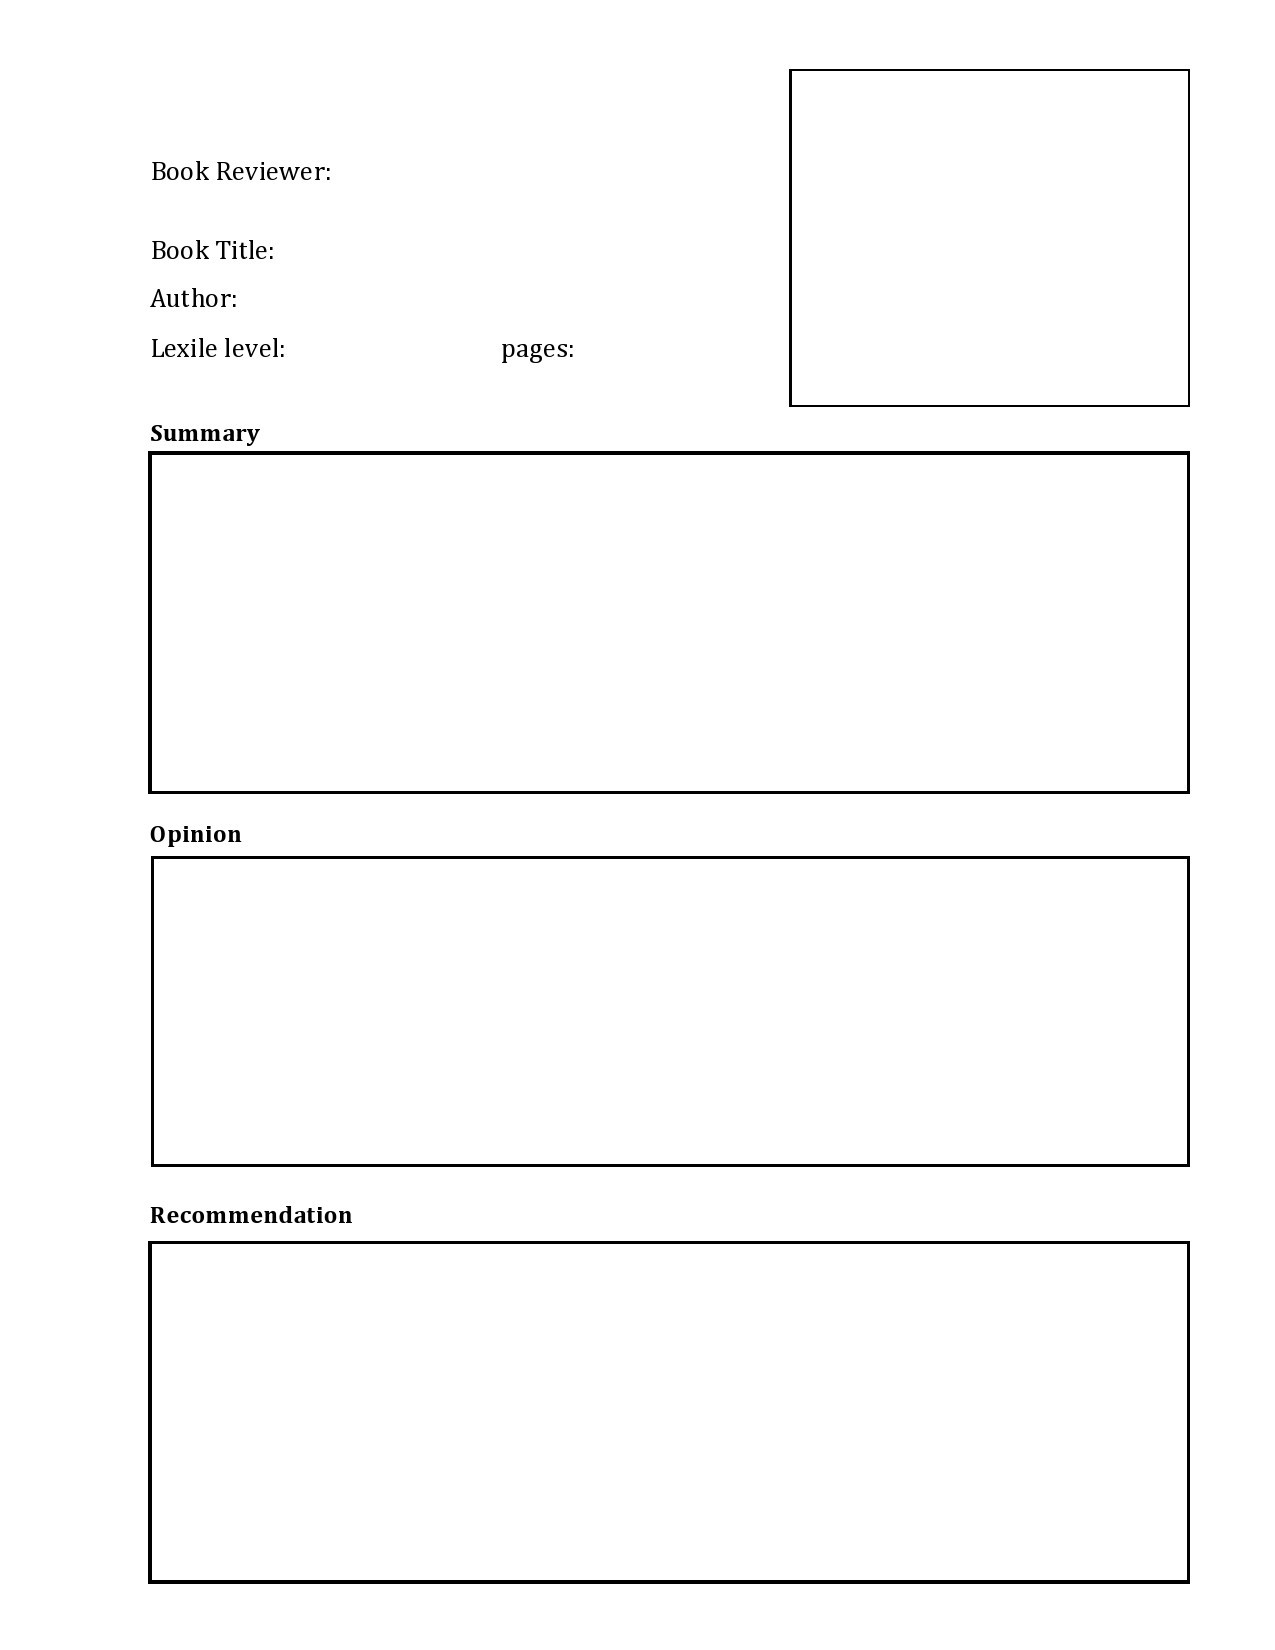 Free book review template 22